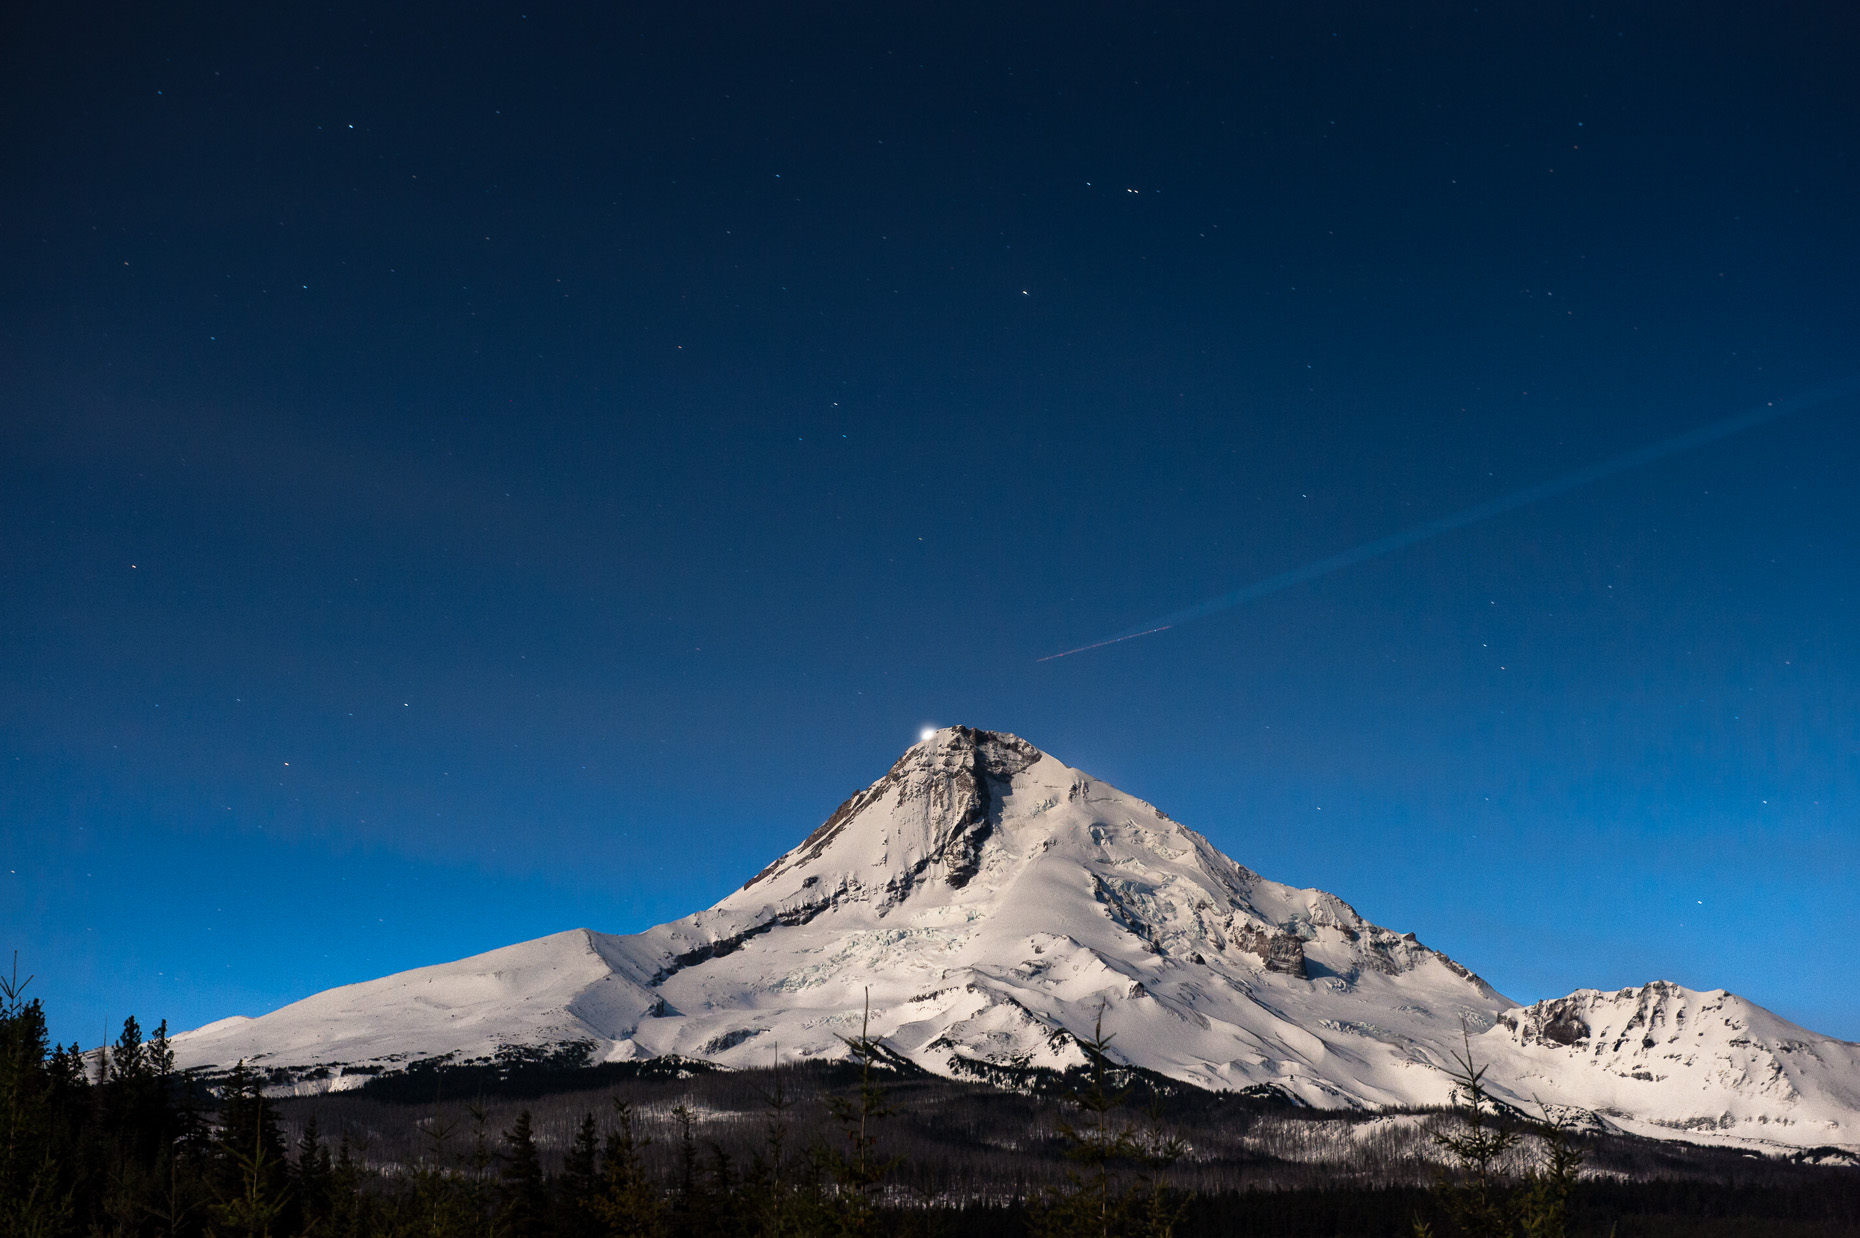 Nightime photo of Mt Hood with jet trails and backlit by Venus.